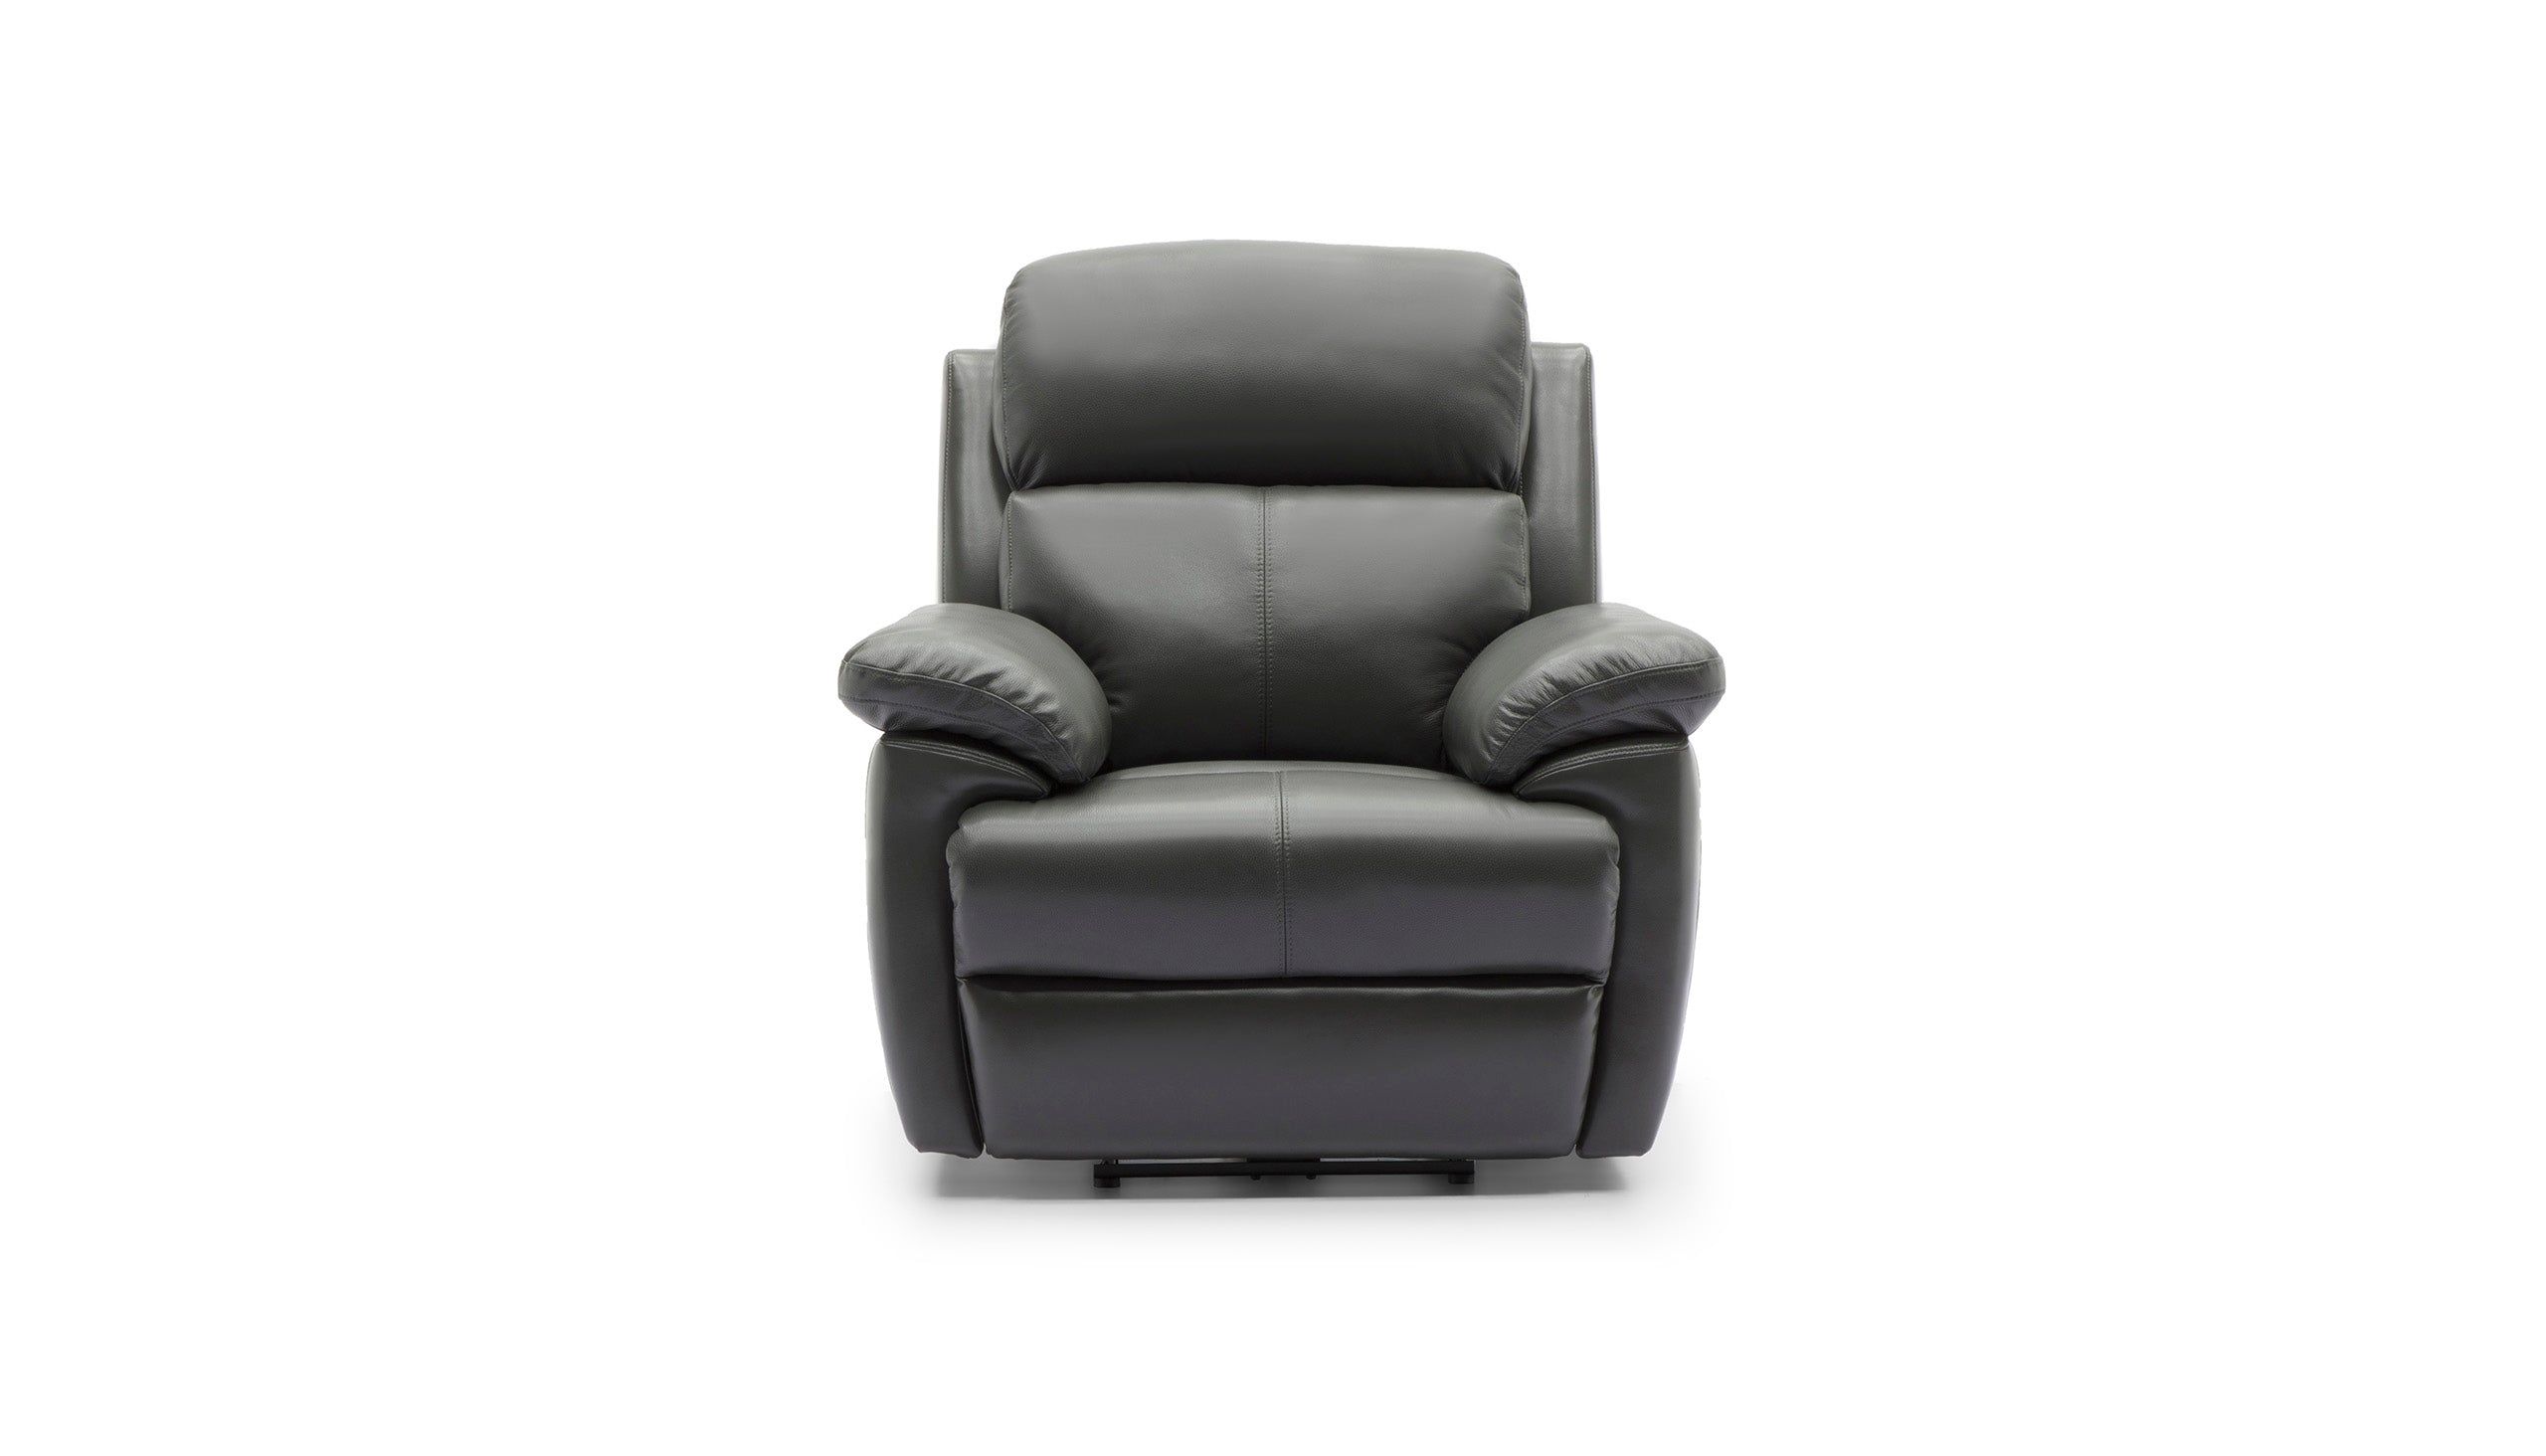 Blair Power Recliner Armchair in Leather